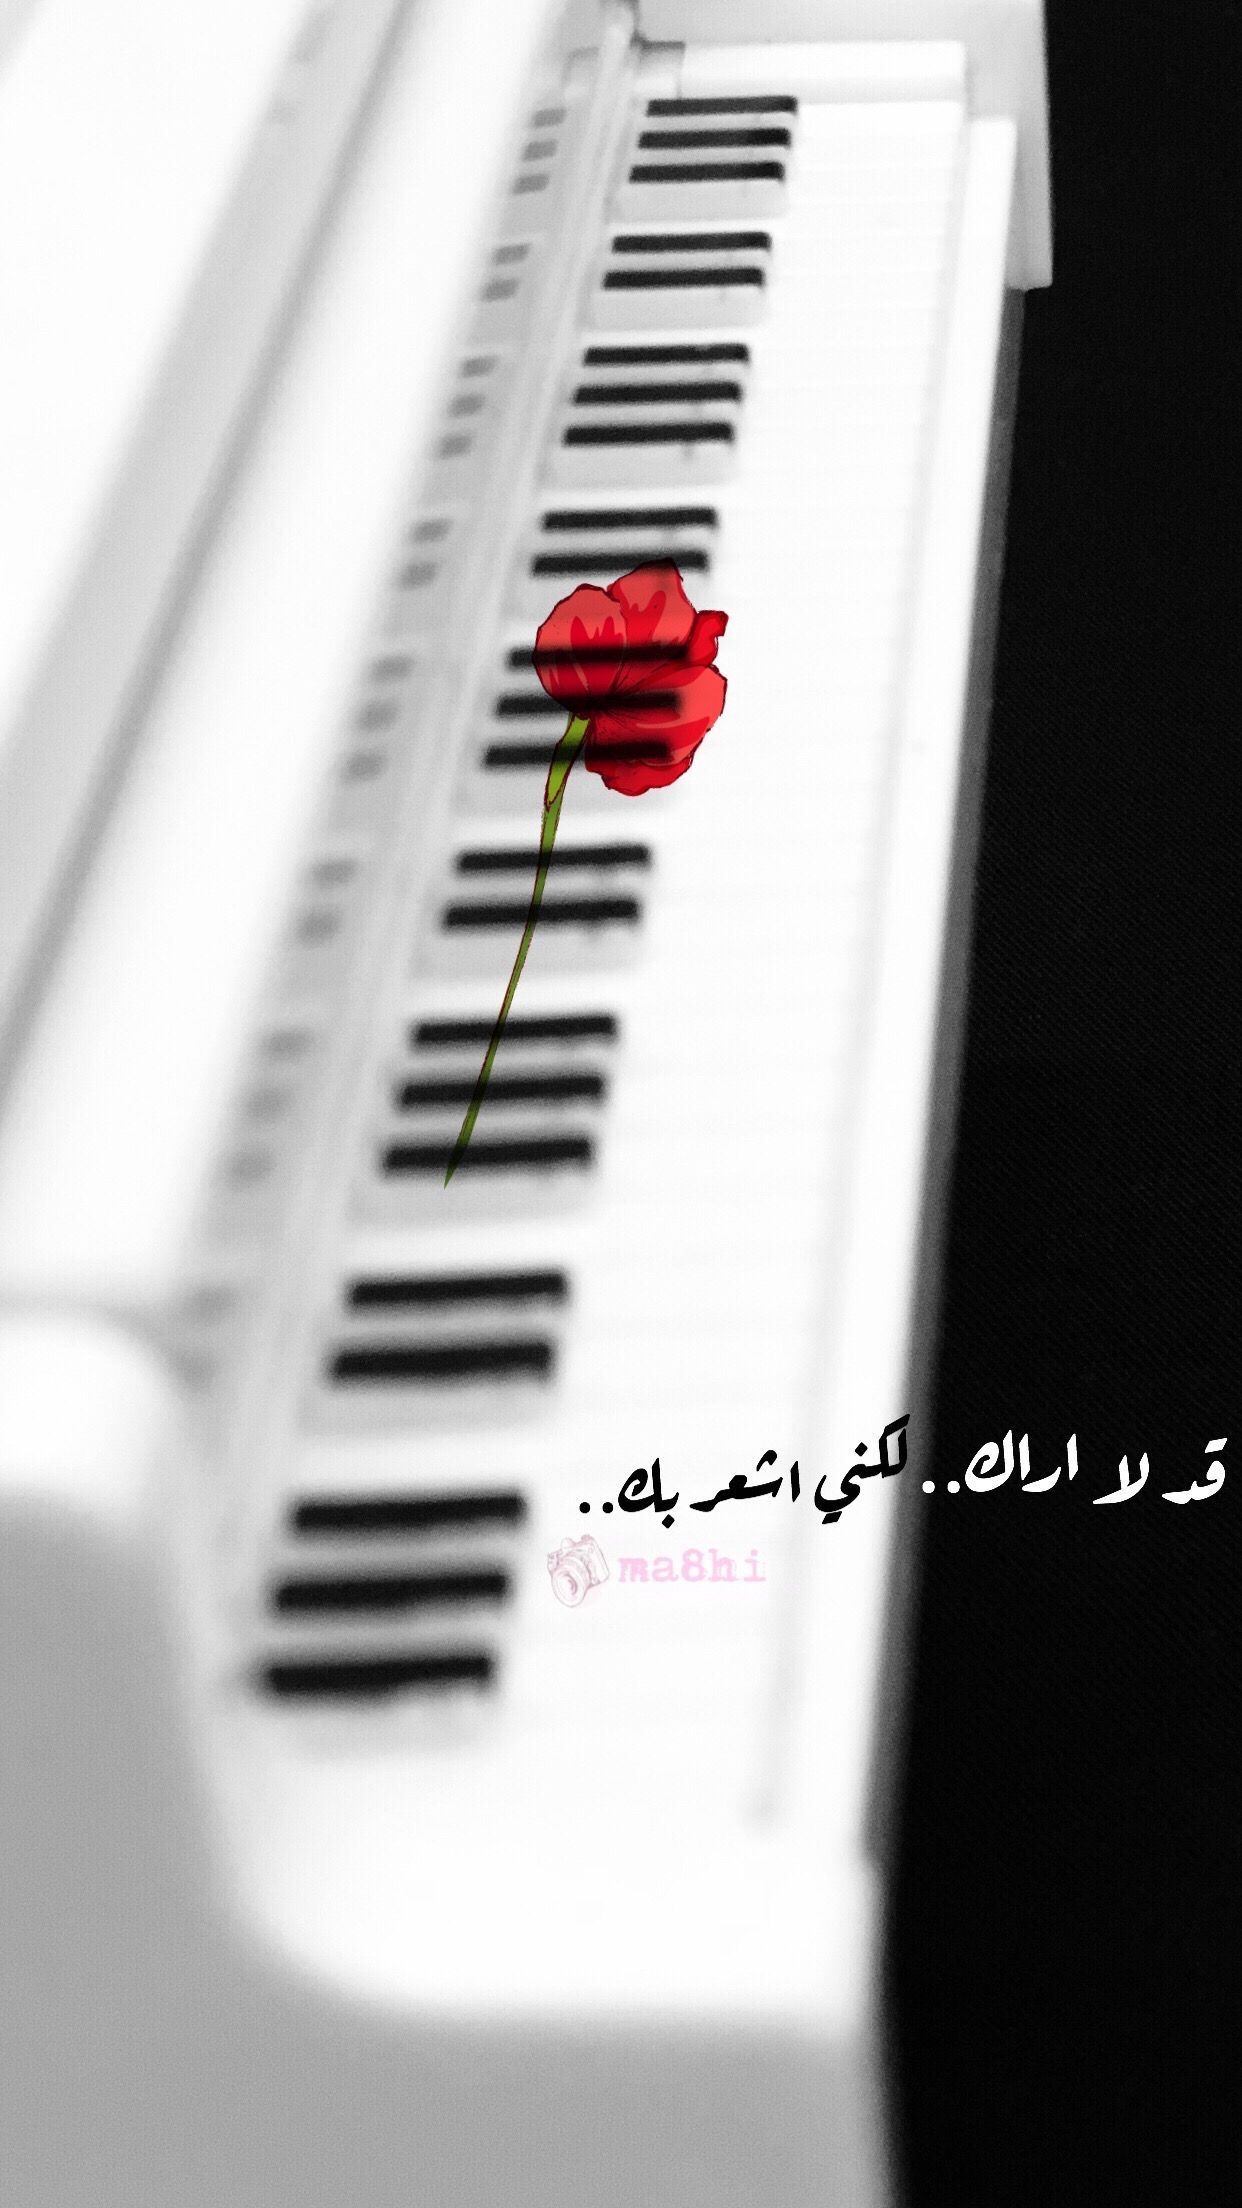 Pin By 7lm On رمزيات Playing Cards Music Instruments Music